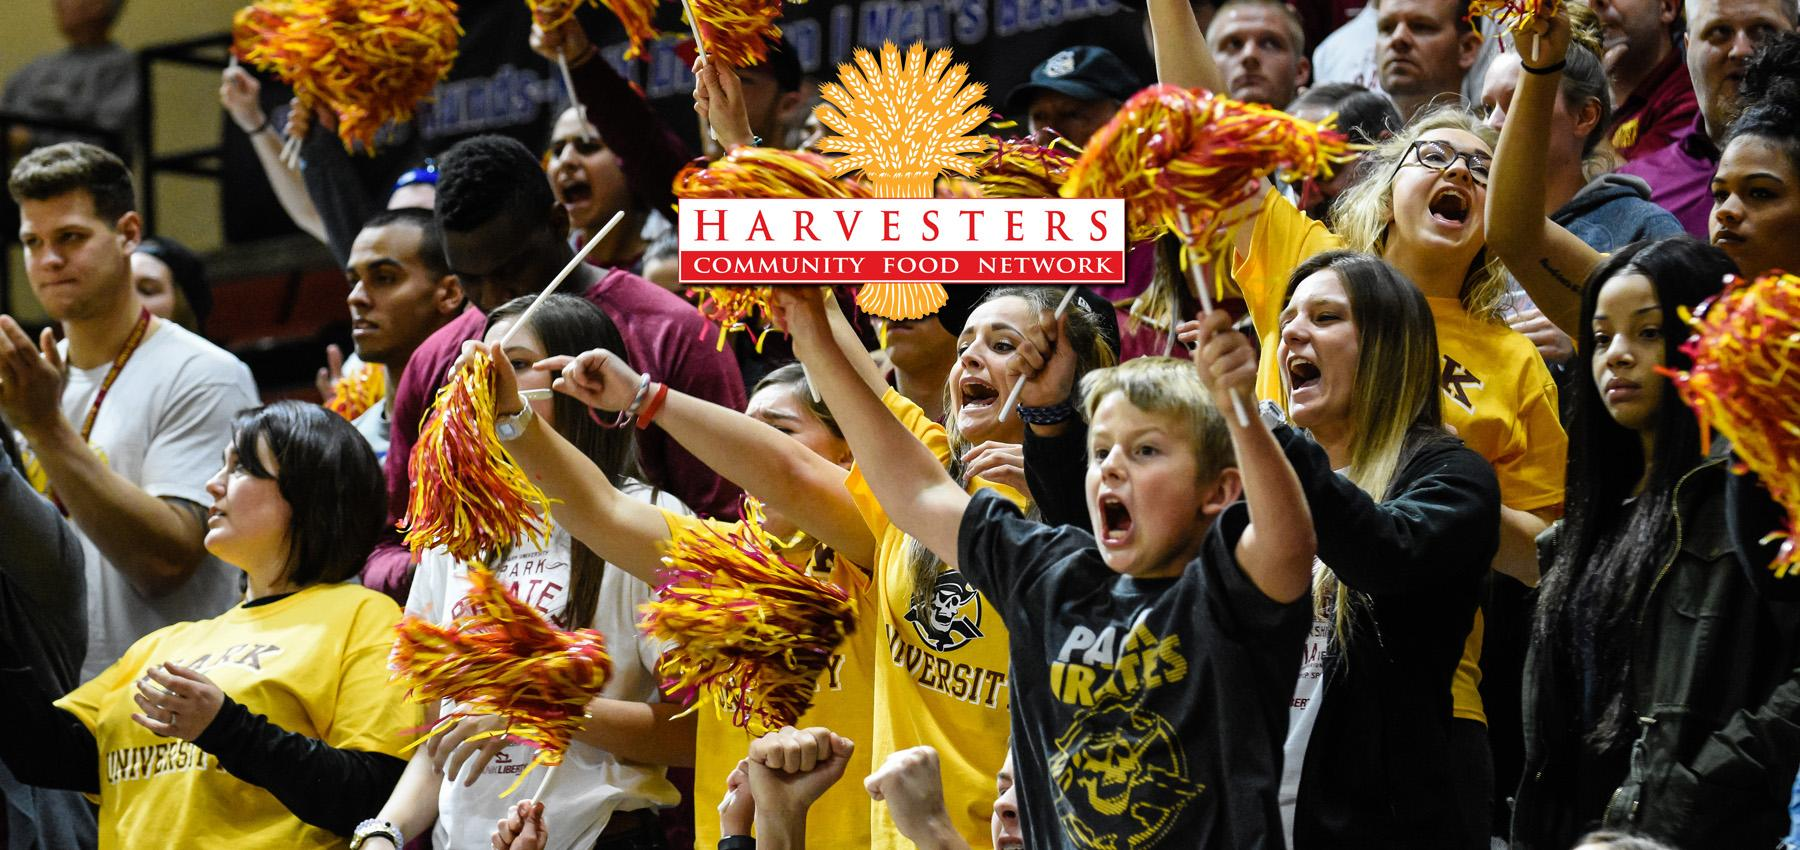 Pirates Announce Youth Nights to Benefit Harvesters - The Community Food Network